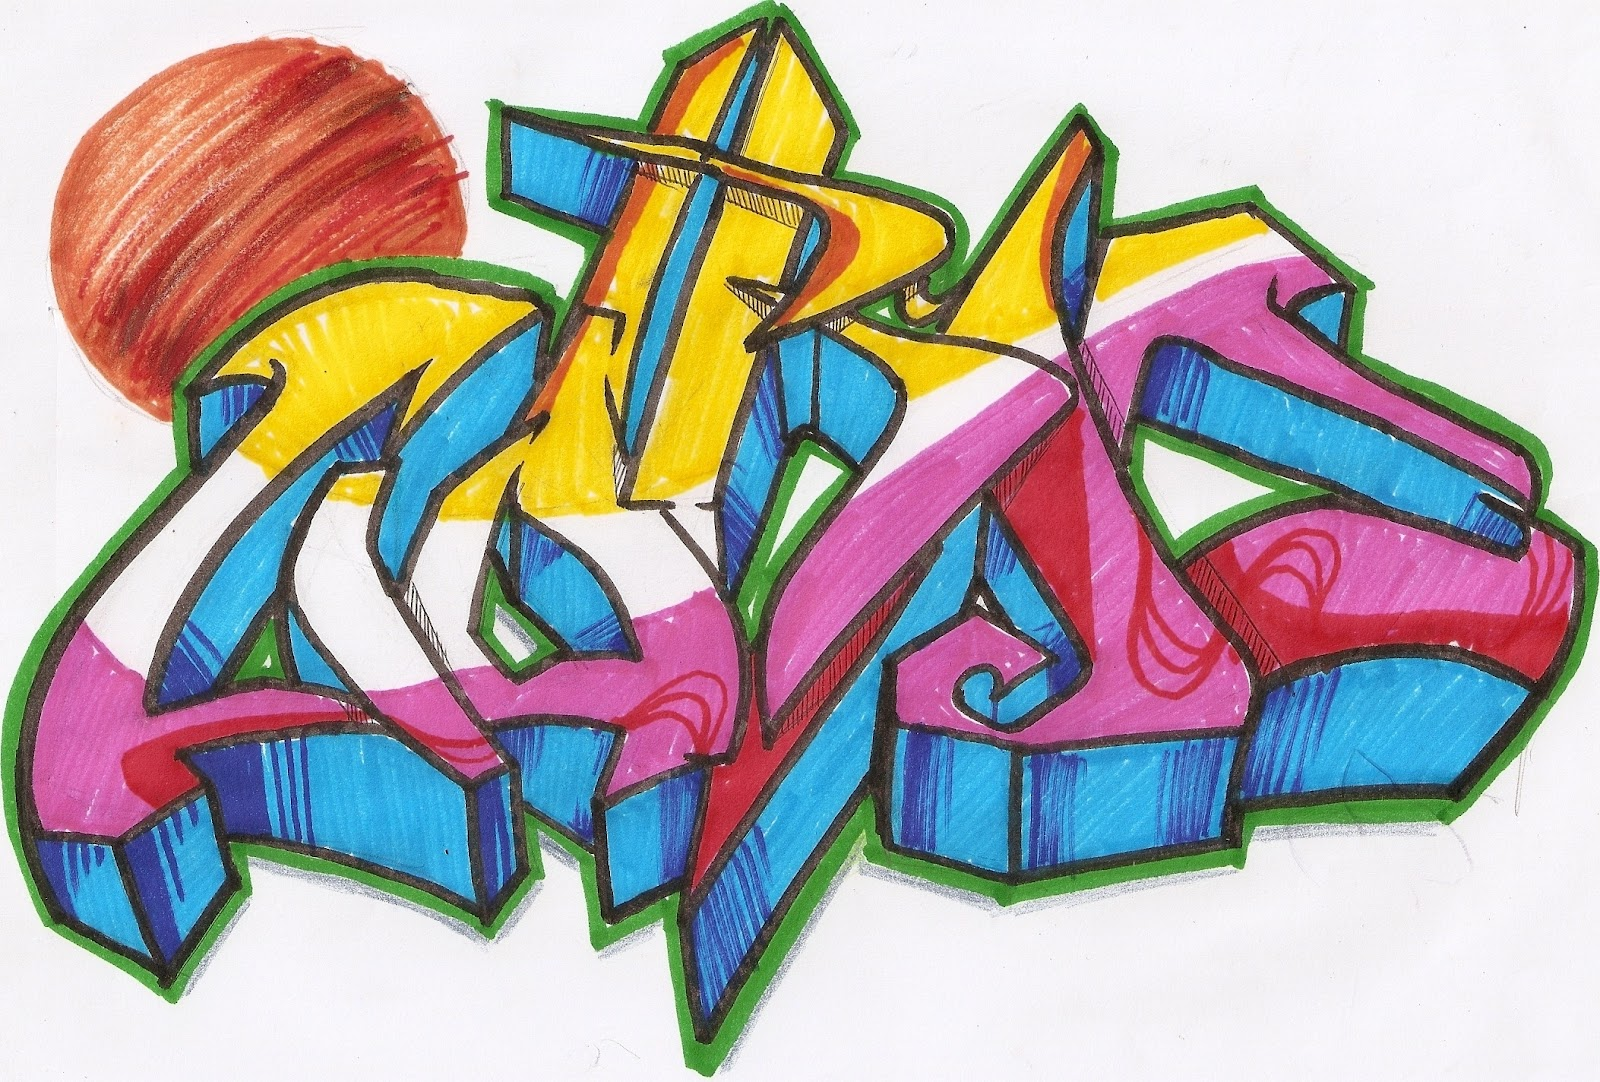 Curso de Desenho On line - com Gene do Grafite: Curso Graffiti on line ...